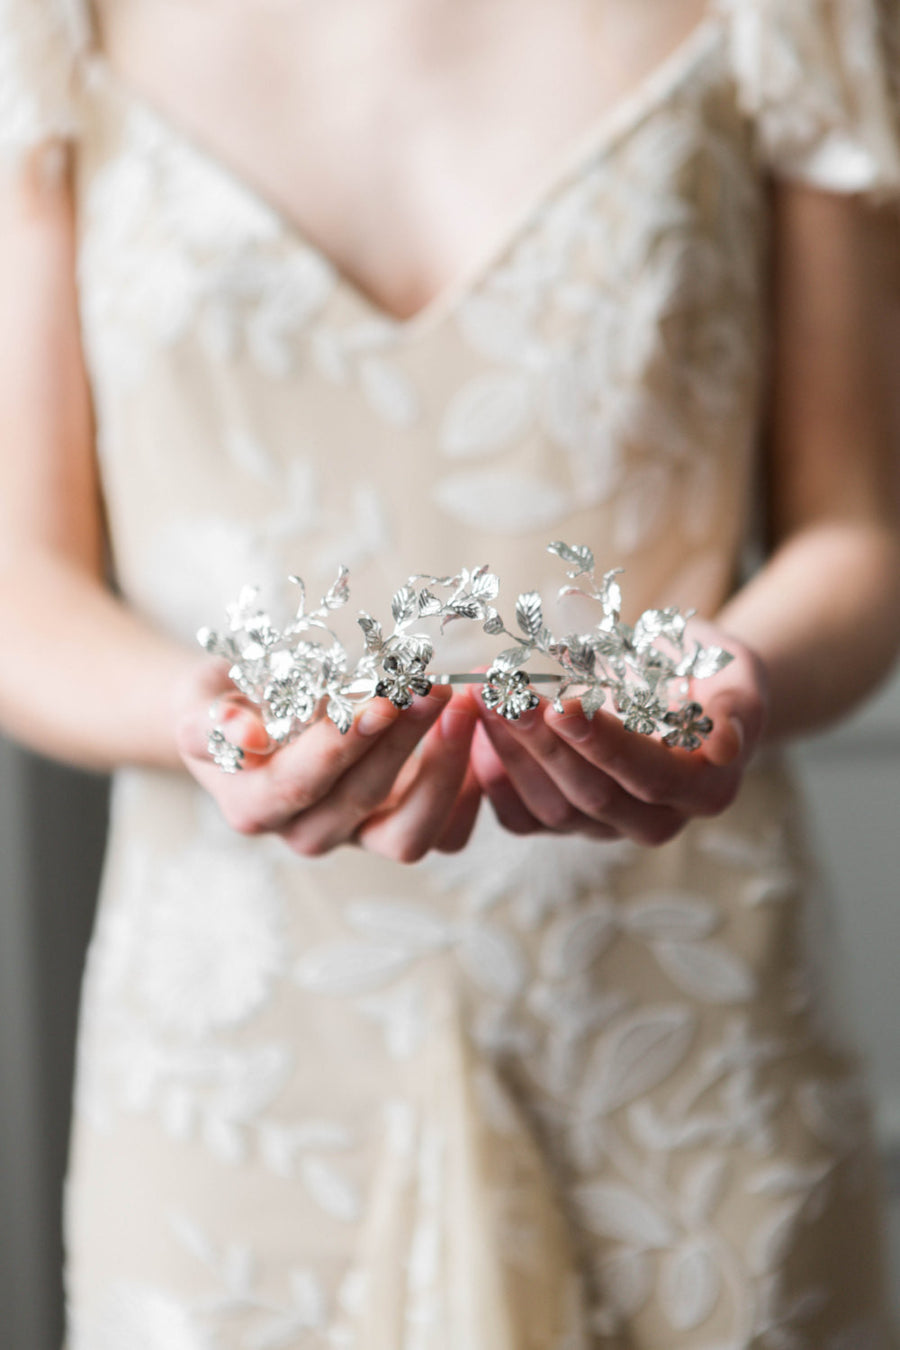 Bride wearing a silver headpice made replica antique myrtle leaves